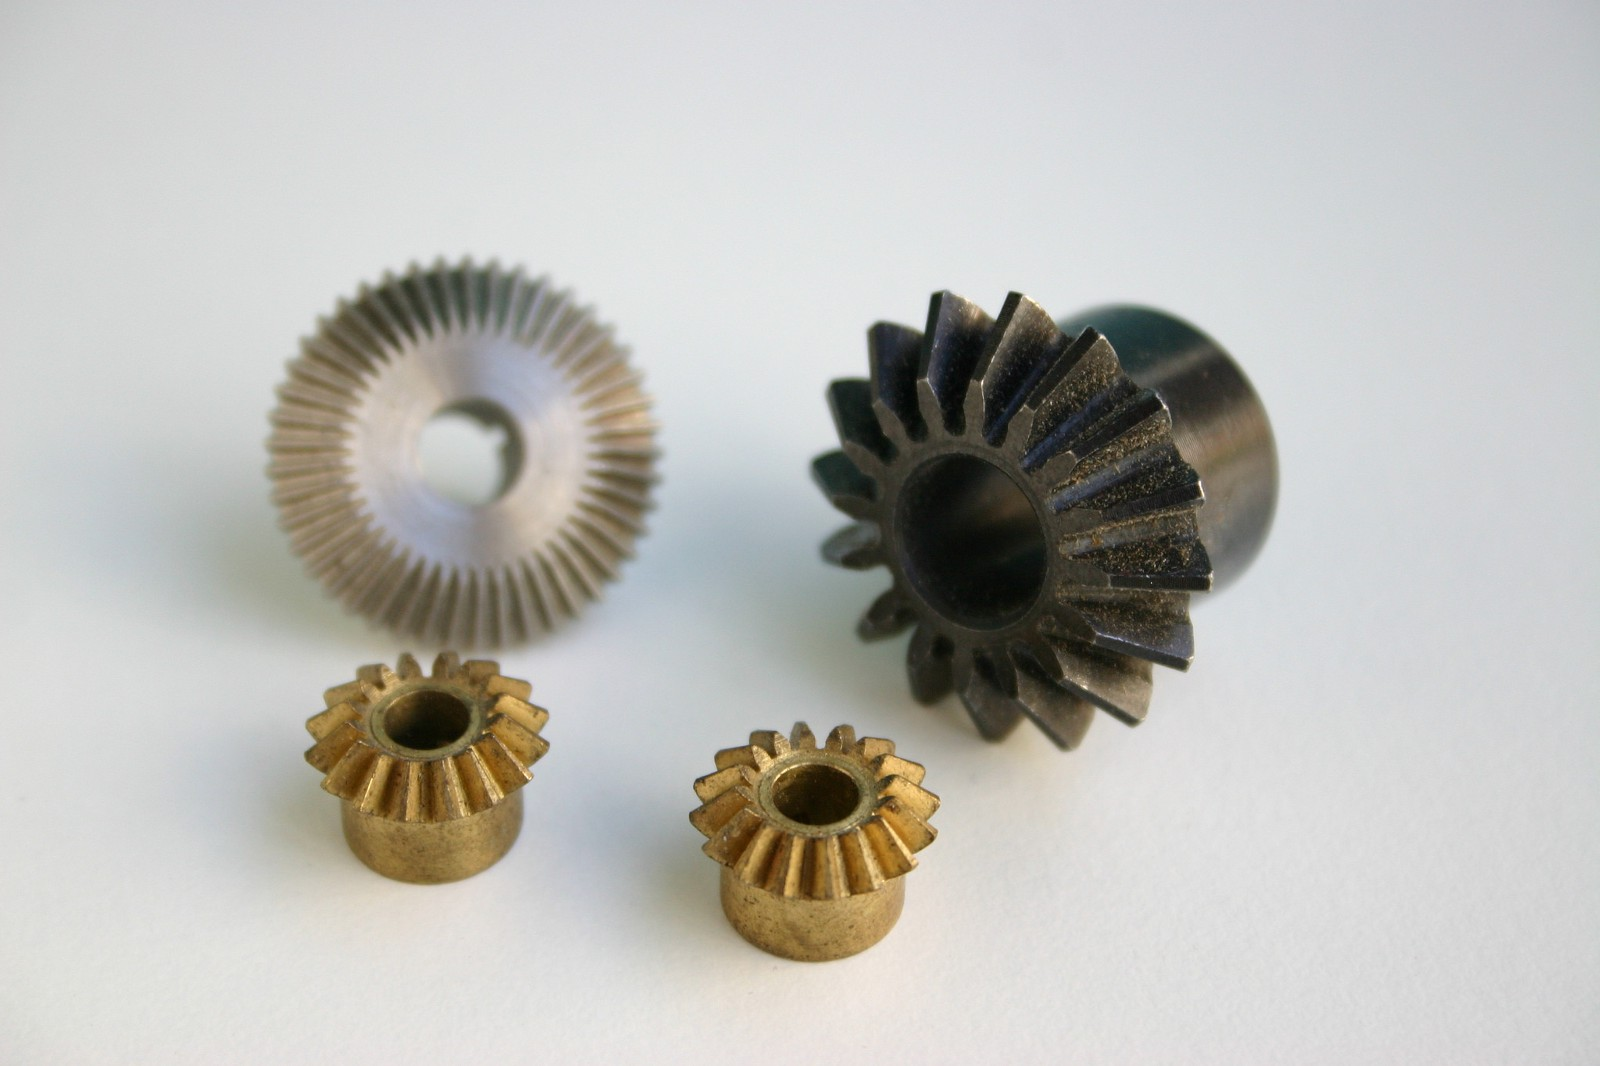 Variety of Bevel Gears